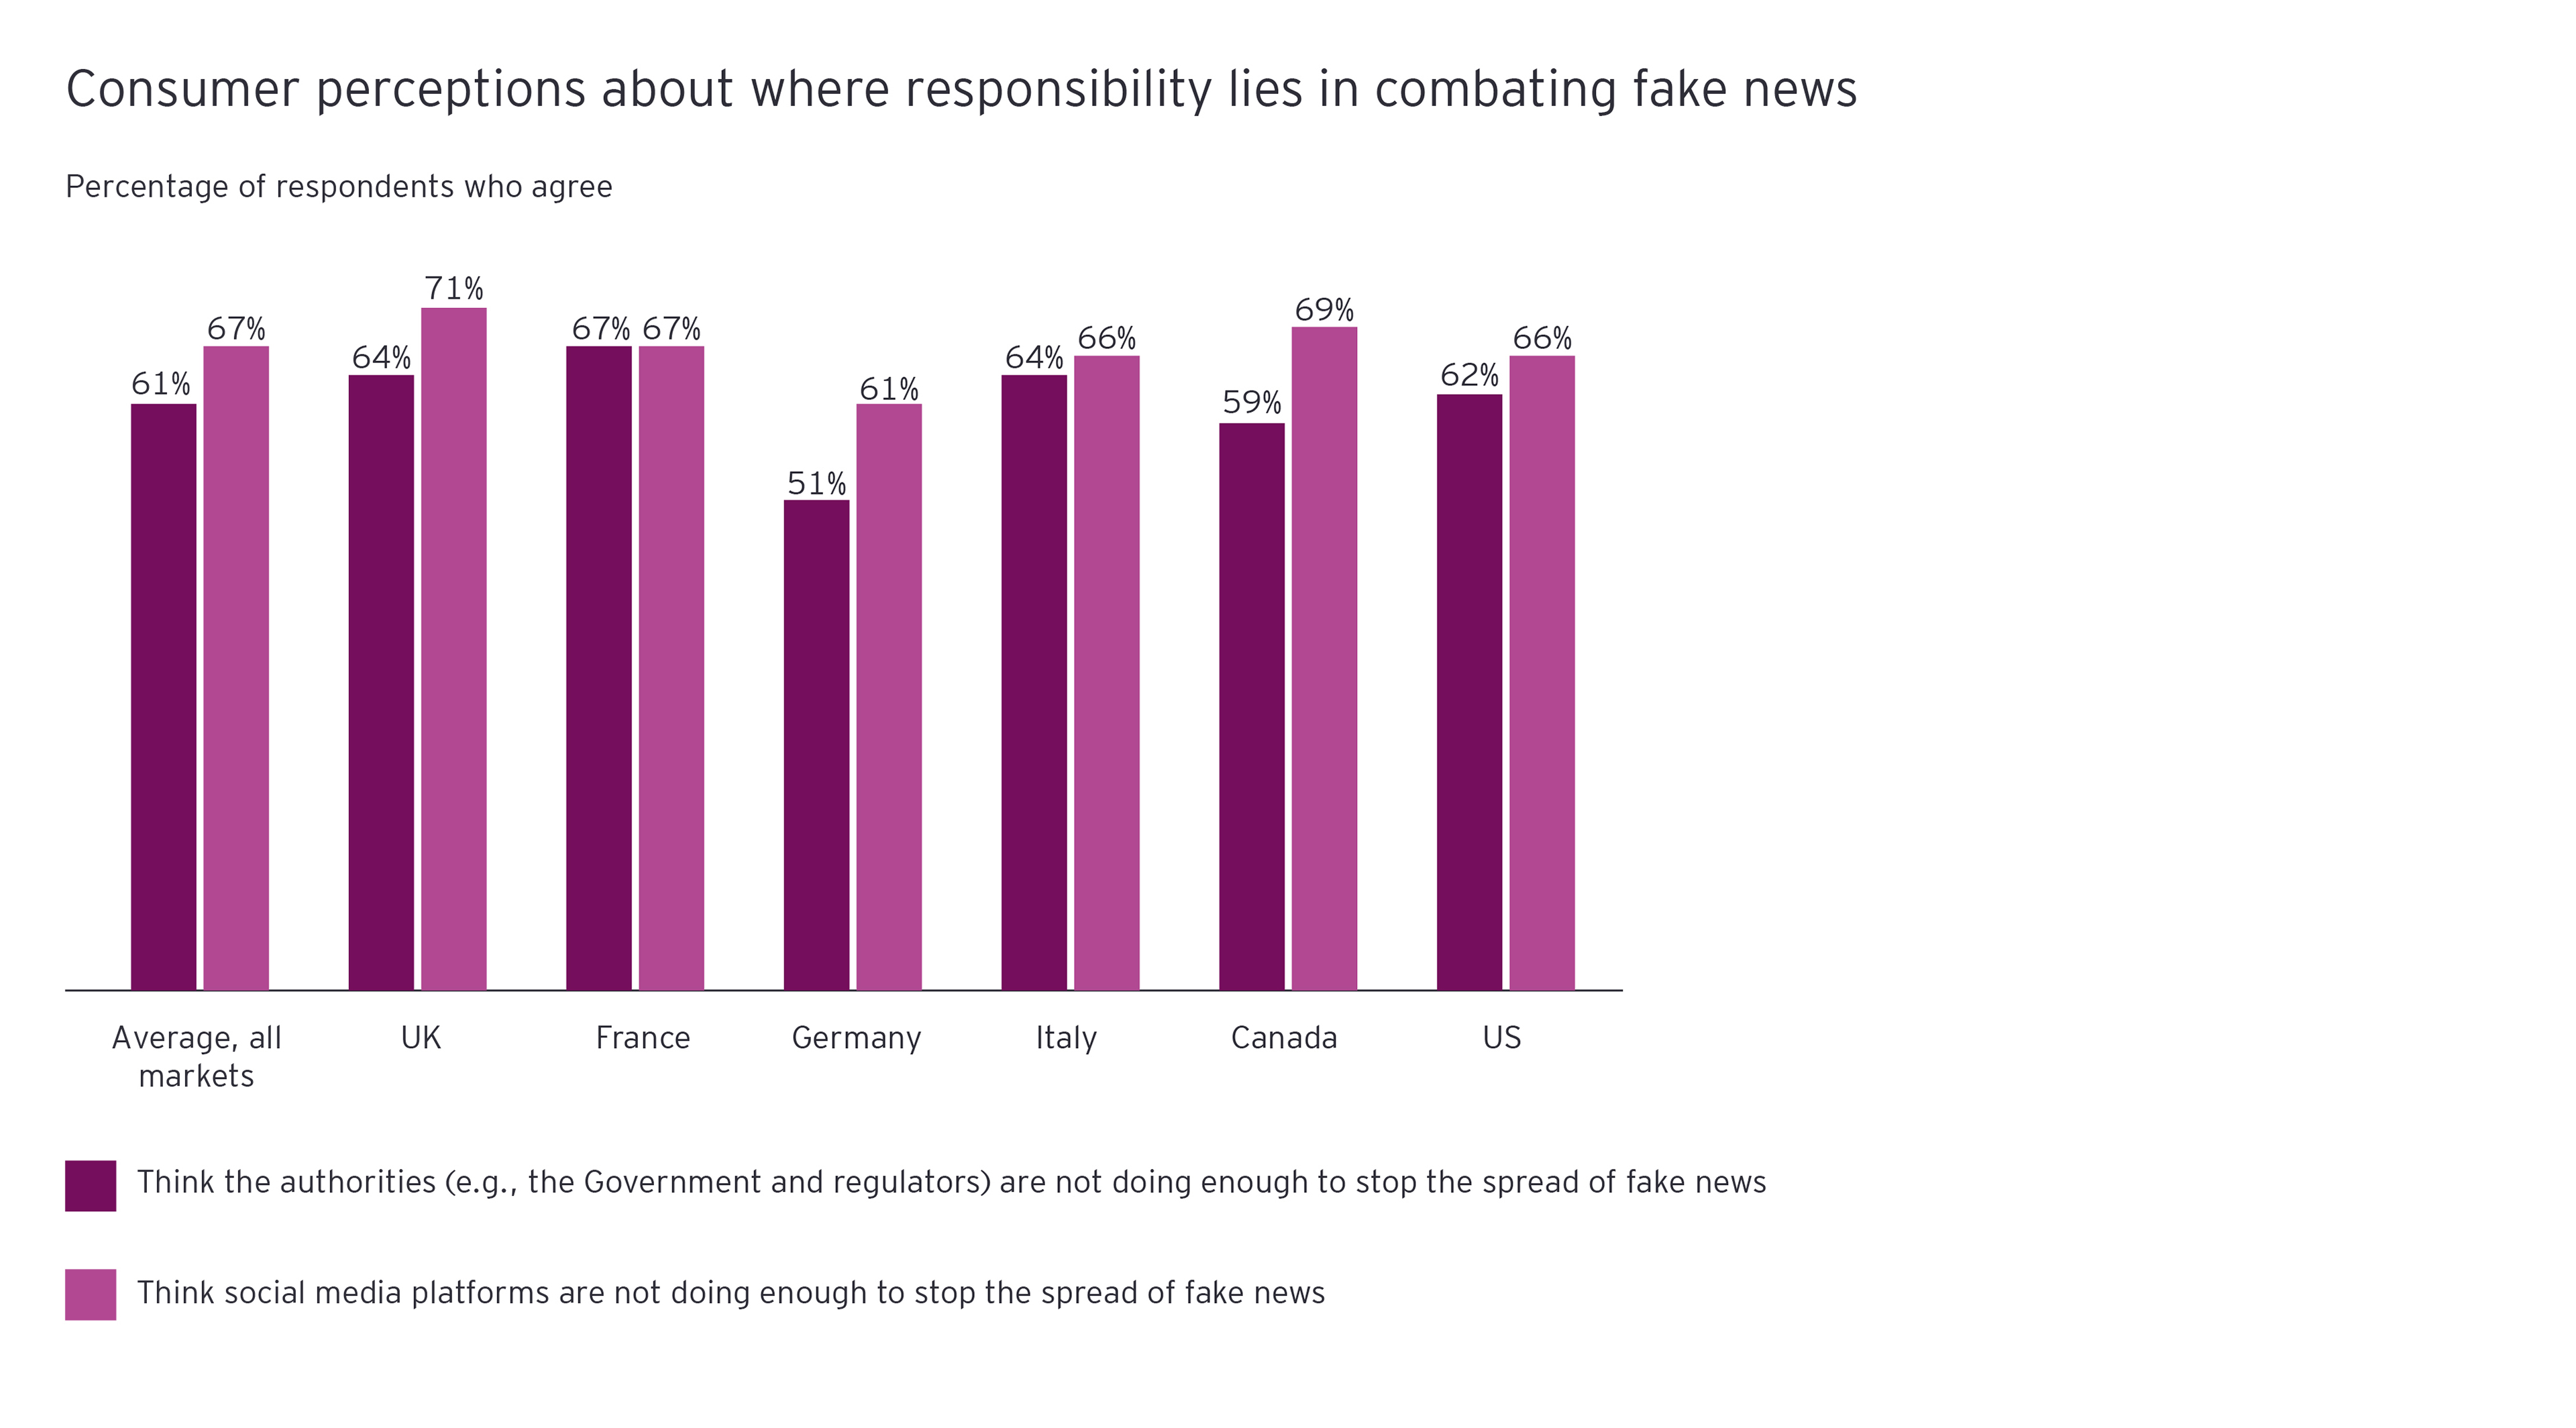 Consumer perceptions about where responsibility lies in combating fake news chart